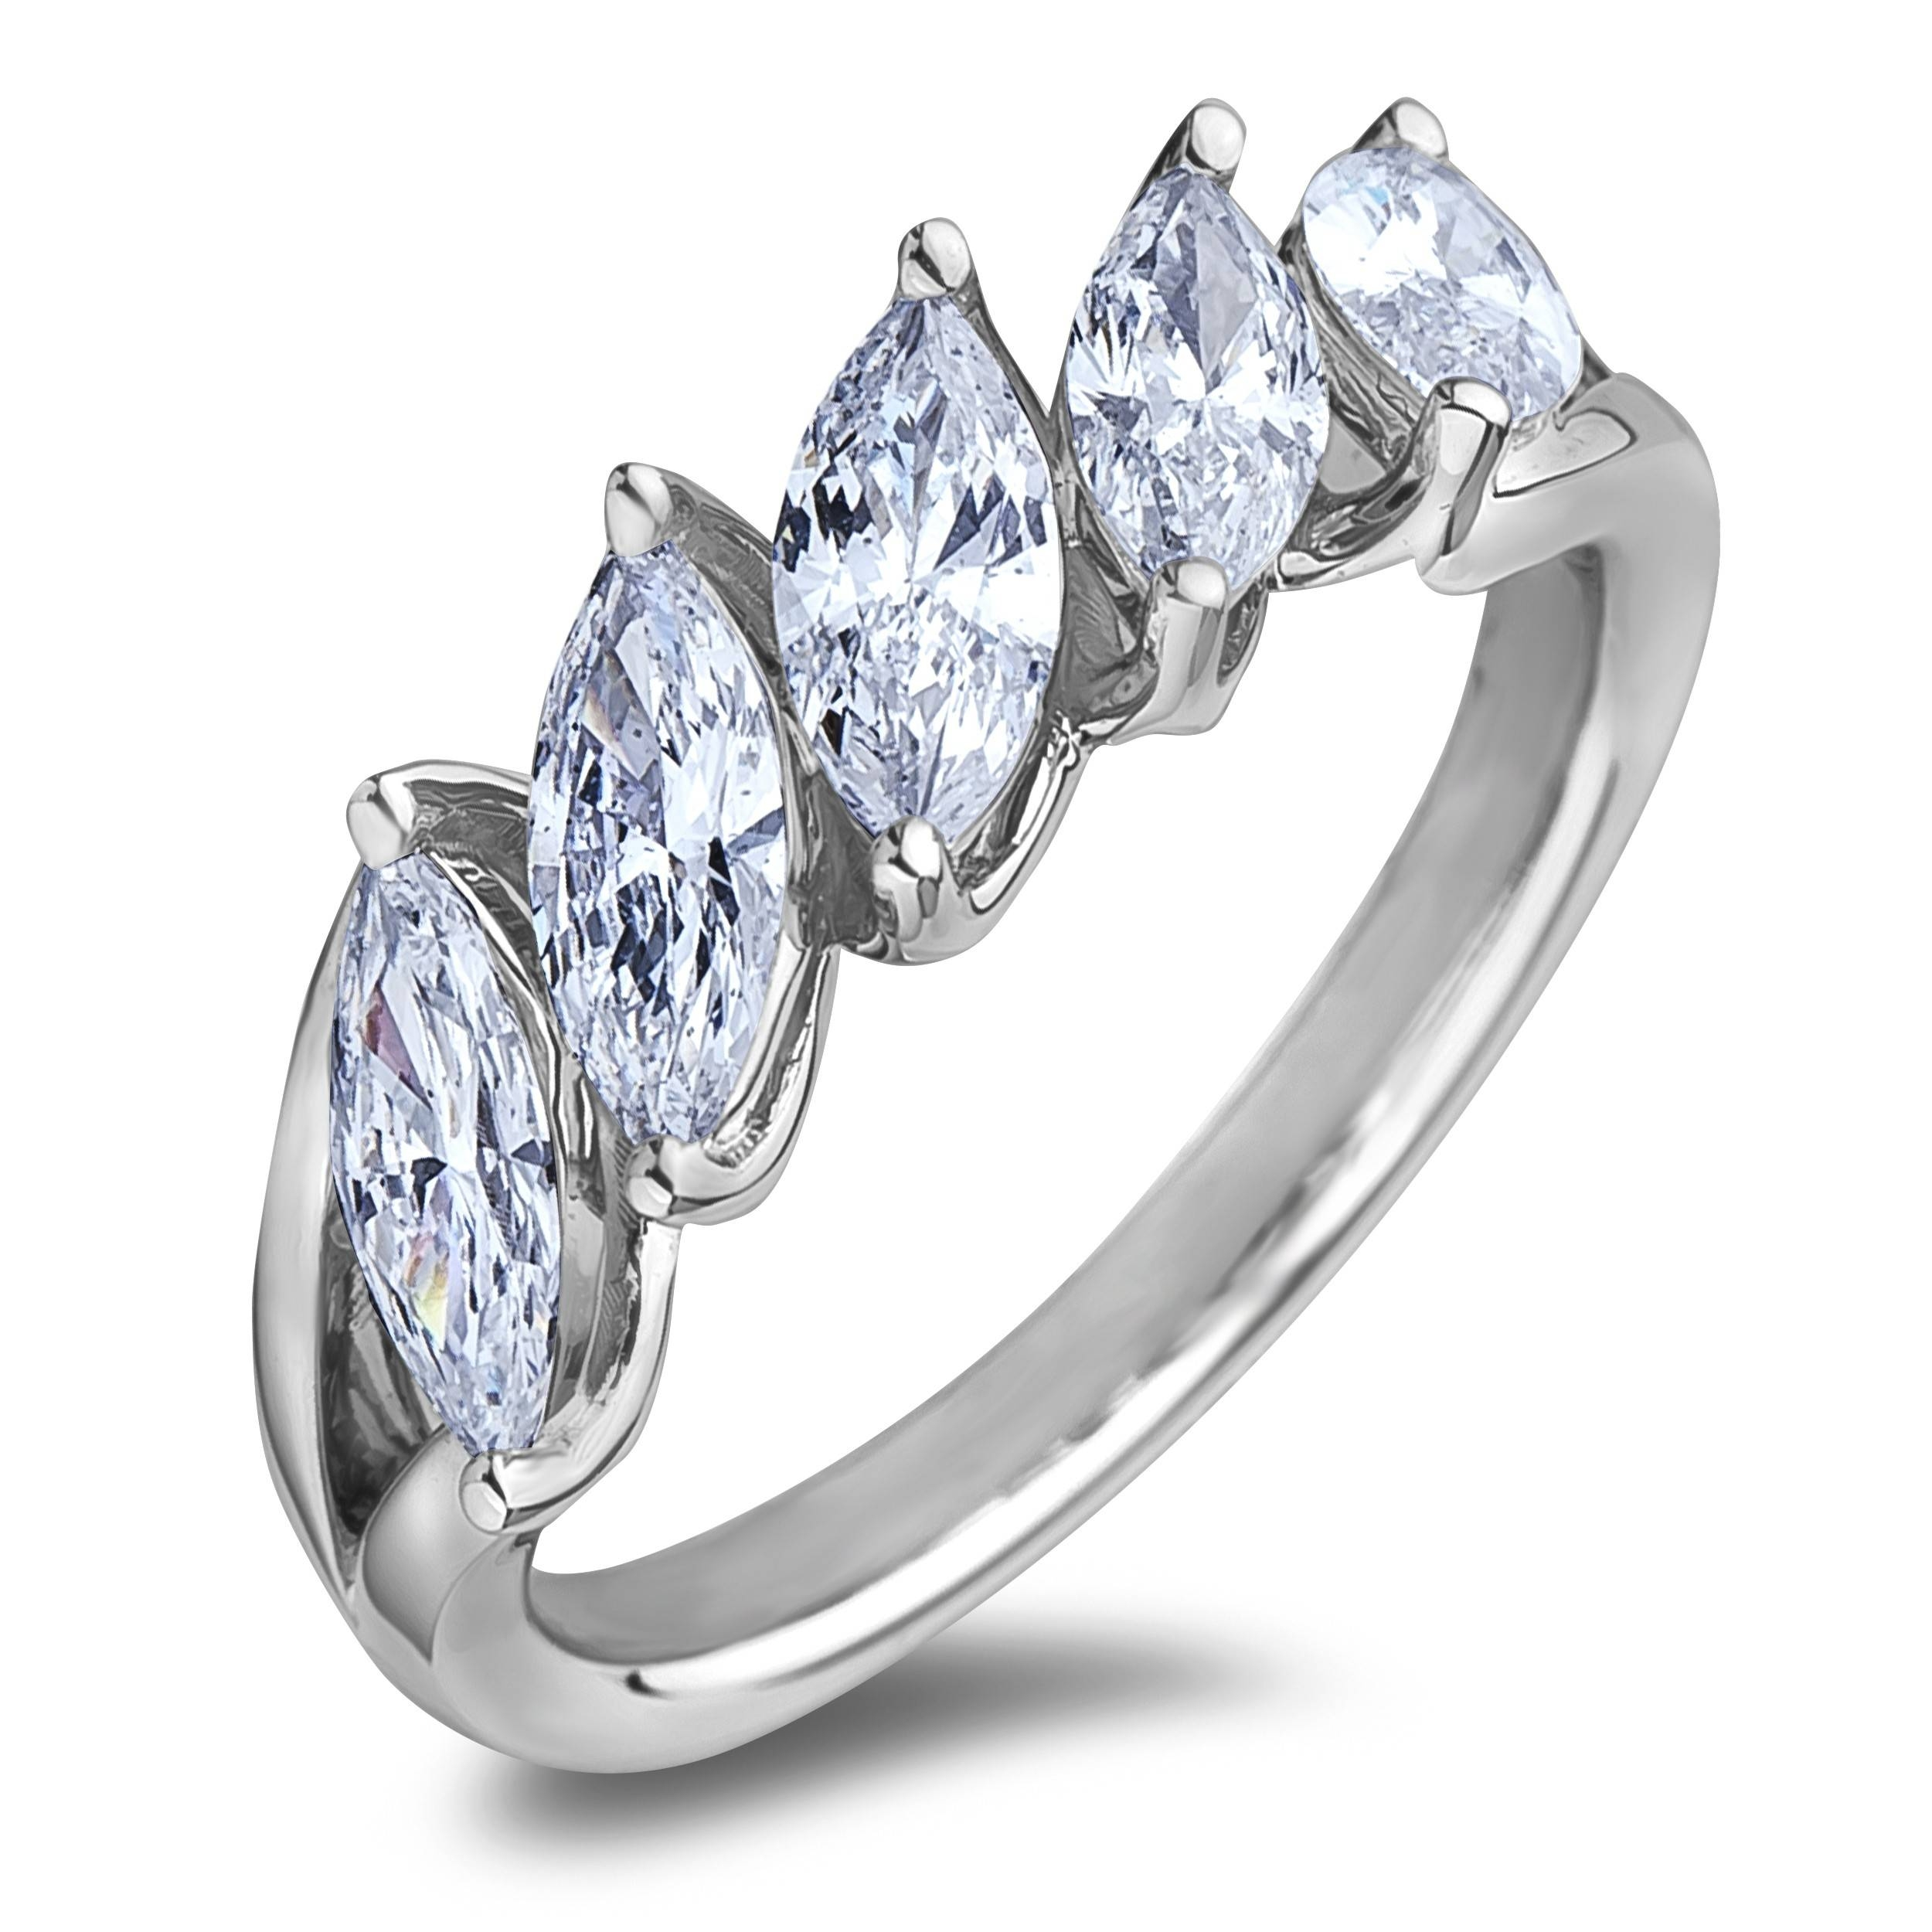 Lugaro | Anniversary Ring Within Most Current Marquise Diamond Anniversary Rings (View 13 of 25)